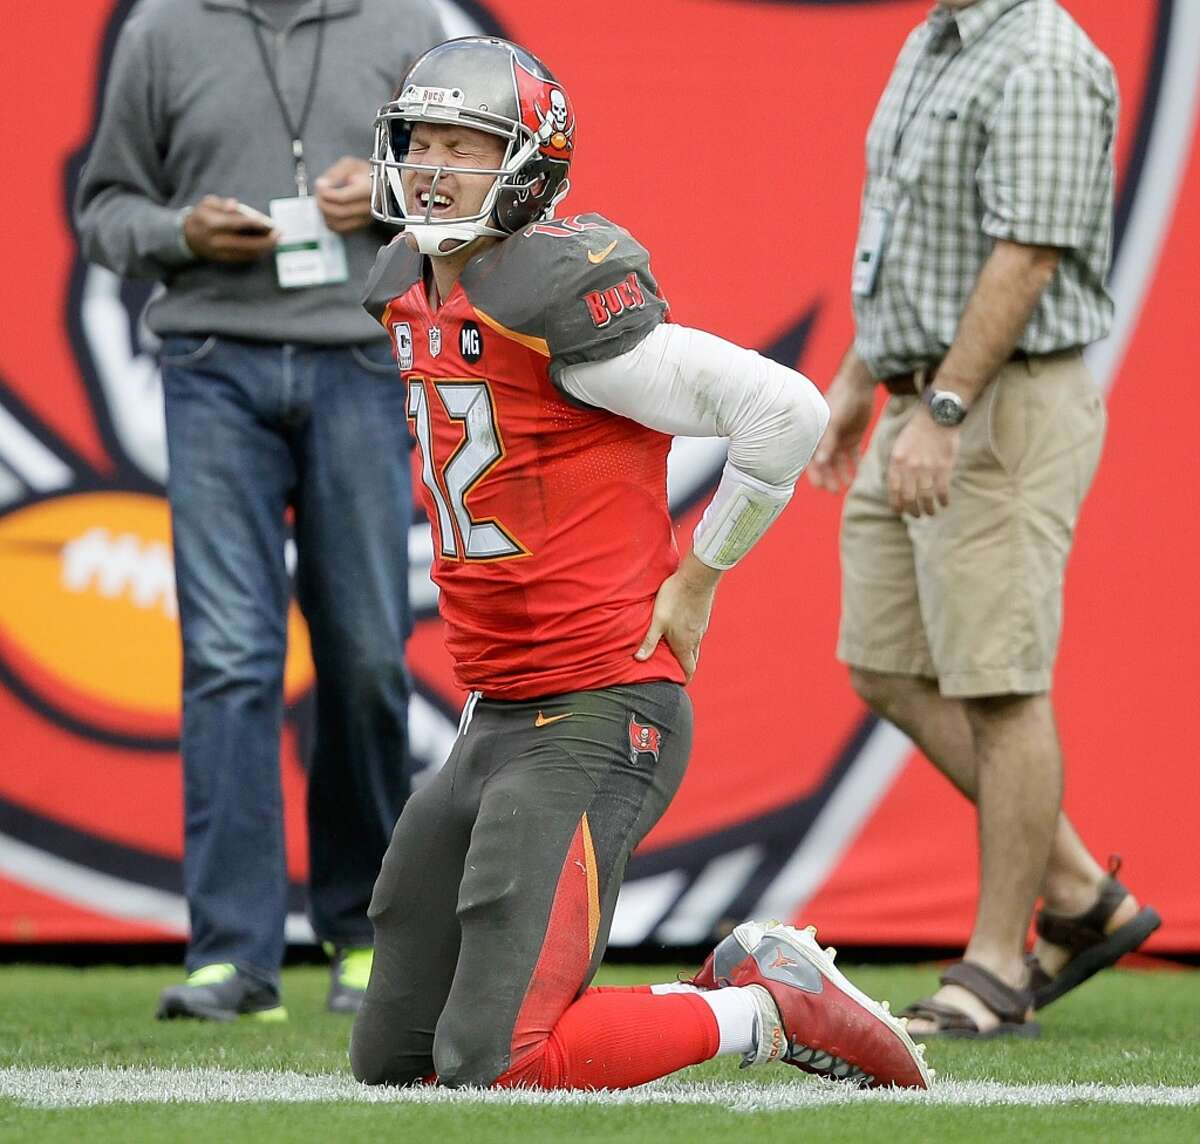 #31. Tampa Bay Buccaneers (1-8) Last week: #31 After being swept by Atlanta, Tampa Bay has a five-game losing streak. Five of the Bucs' eight defeats have been by seven or fewer points.